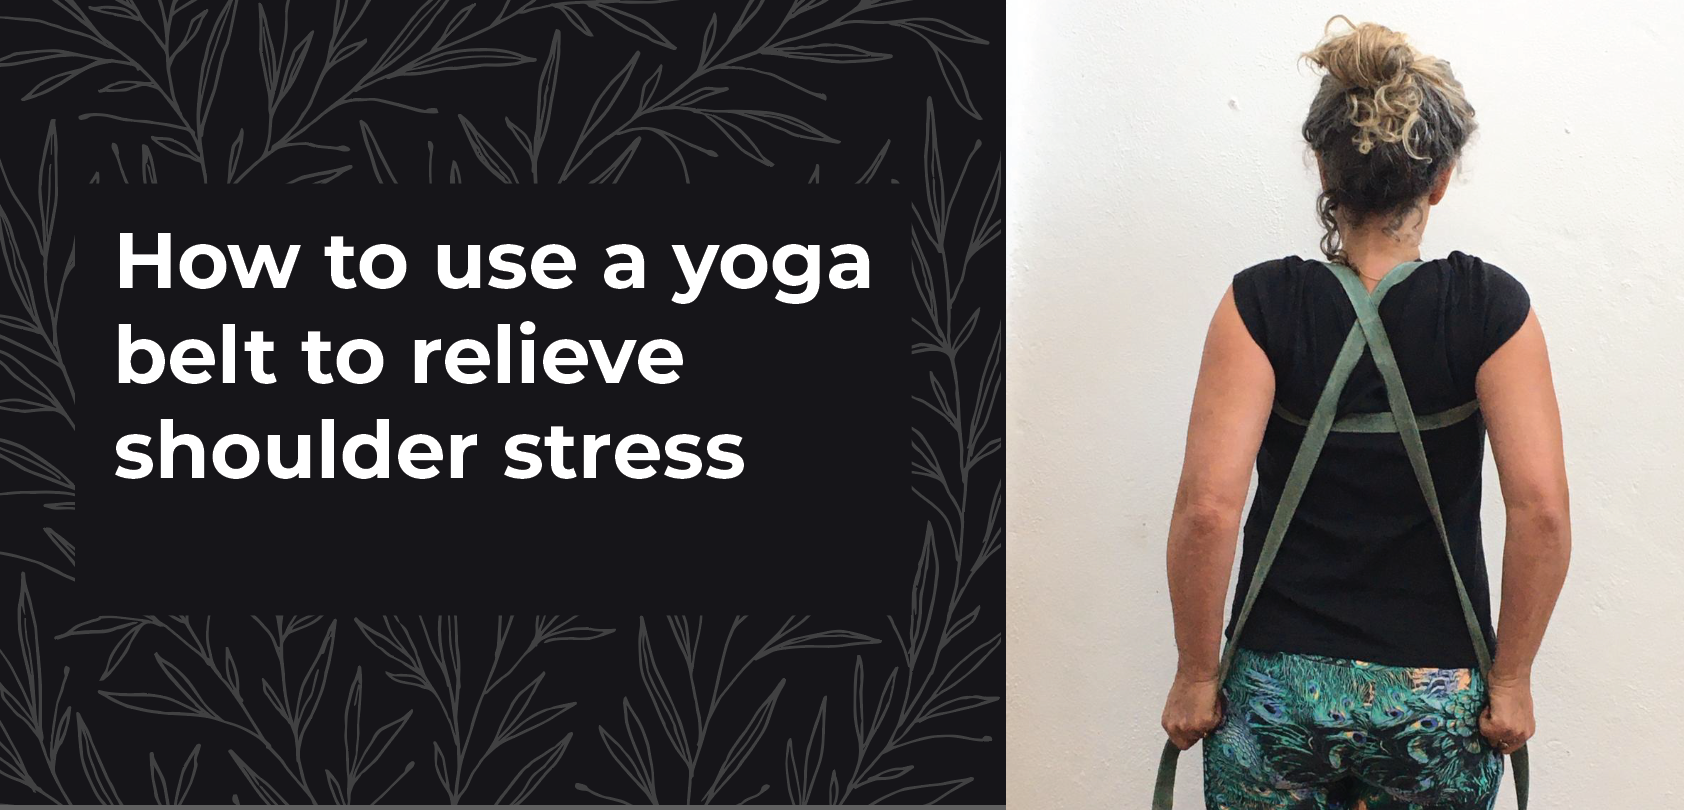 How to use the yoga belt in 5 simple steps